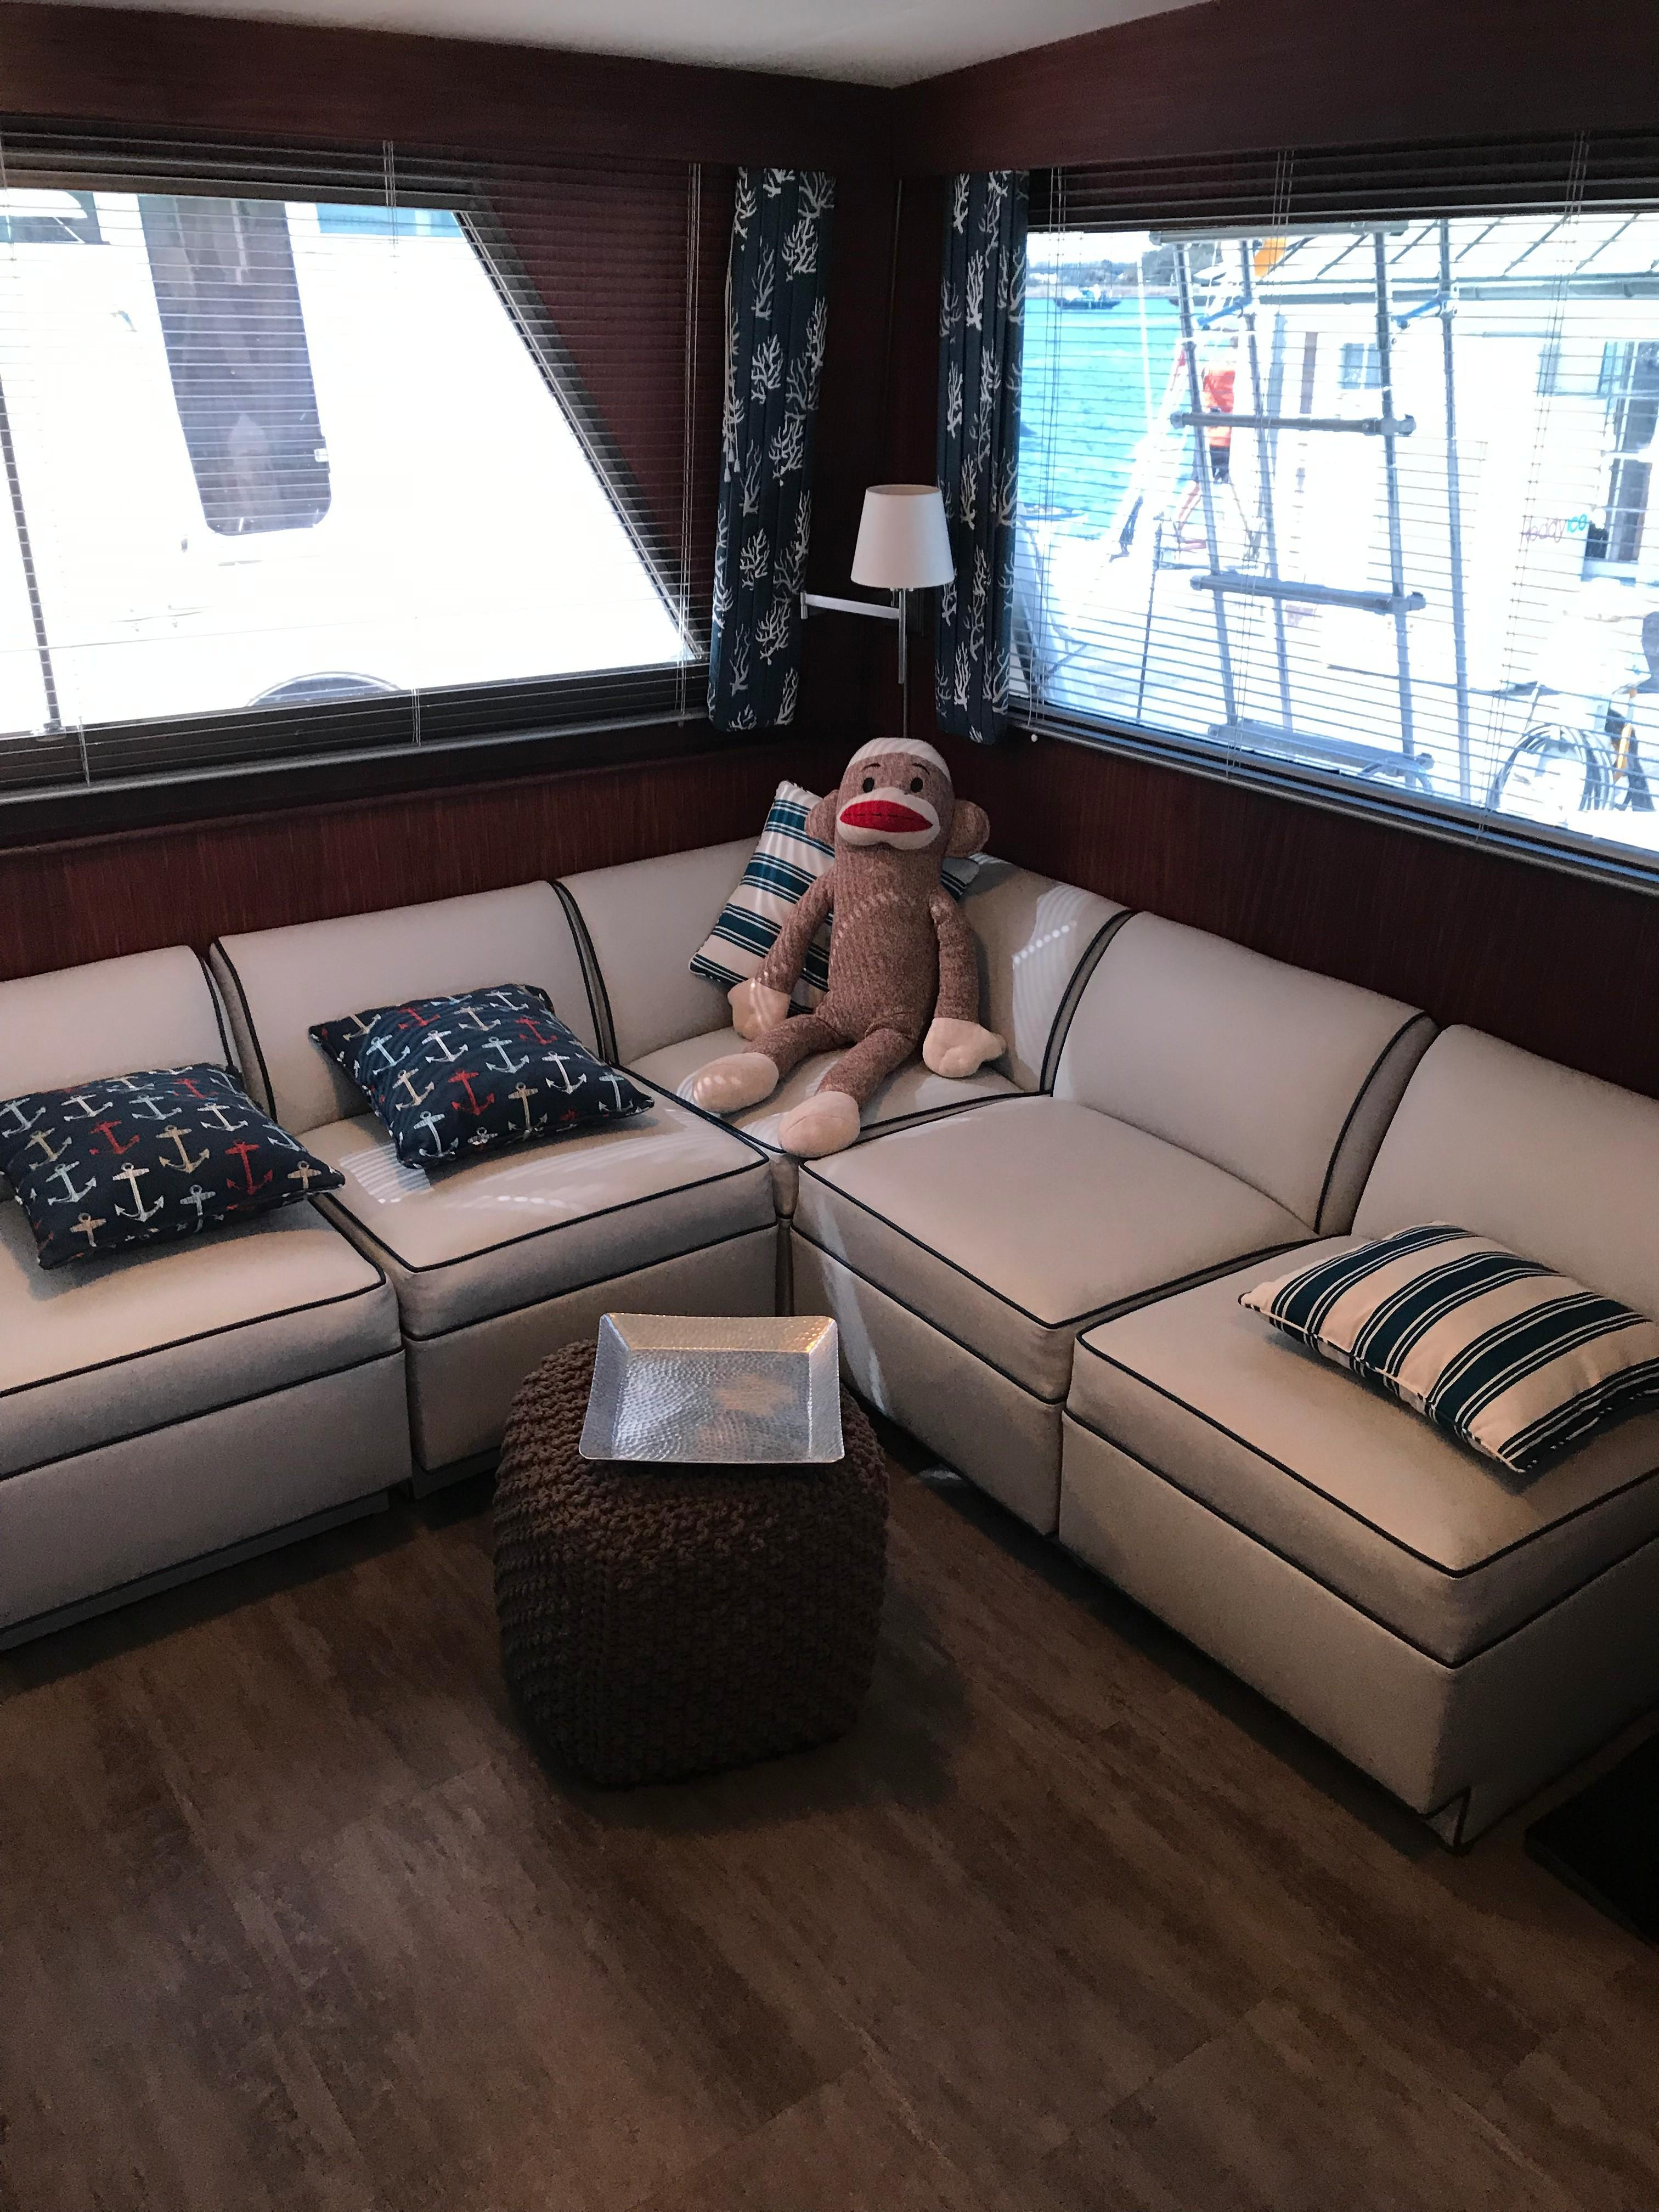 Hatteras Convertible - MUST SEE - Salon to starboard